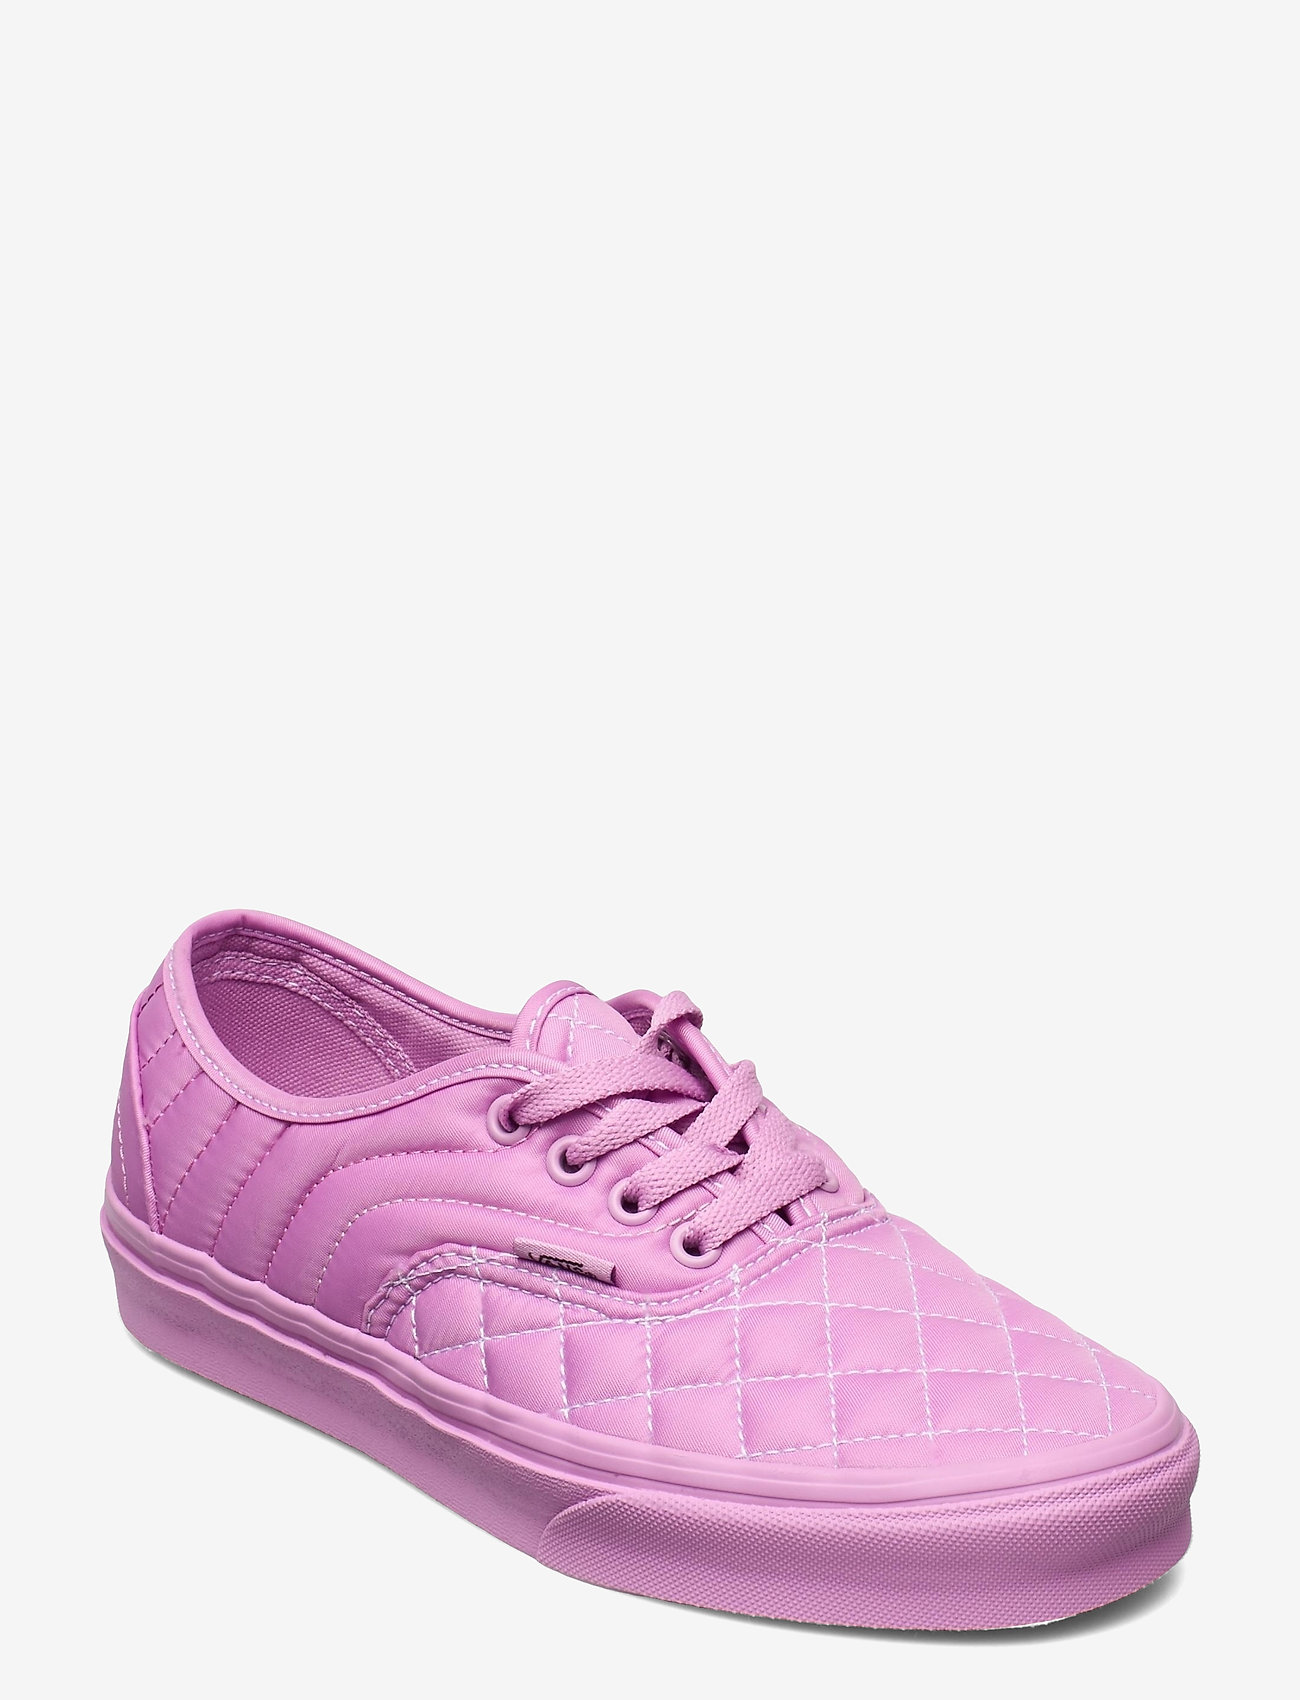 VANS - UA Authentic QLT - lage sneakers - (opening ceremony) orchid - 0